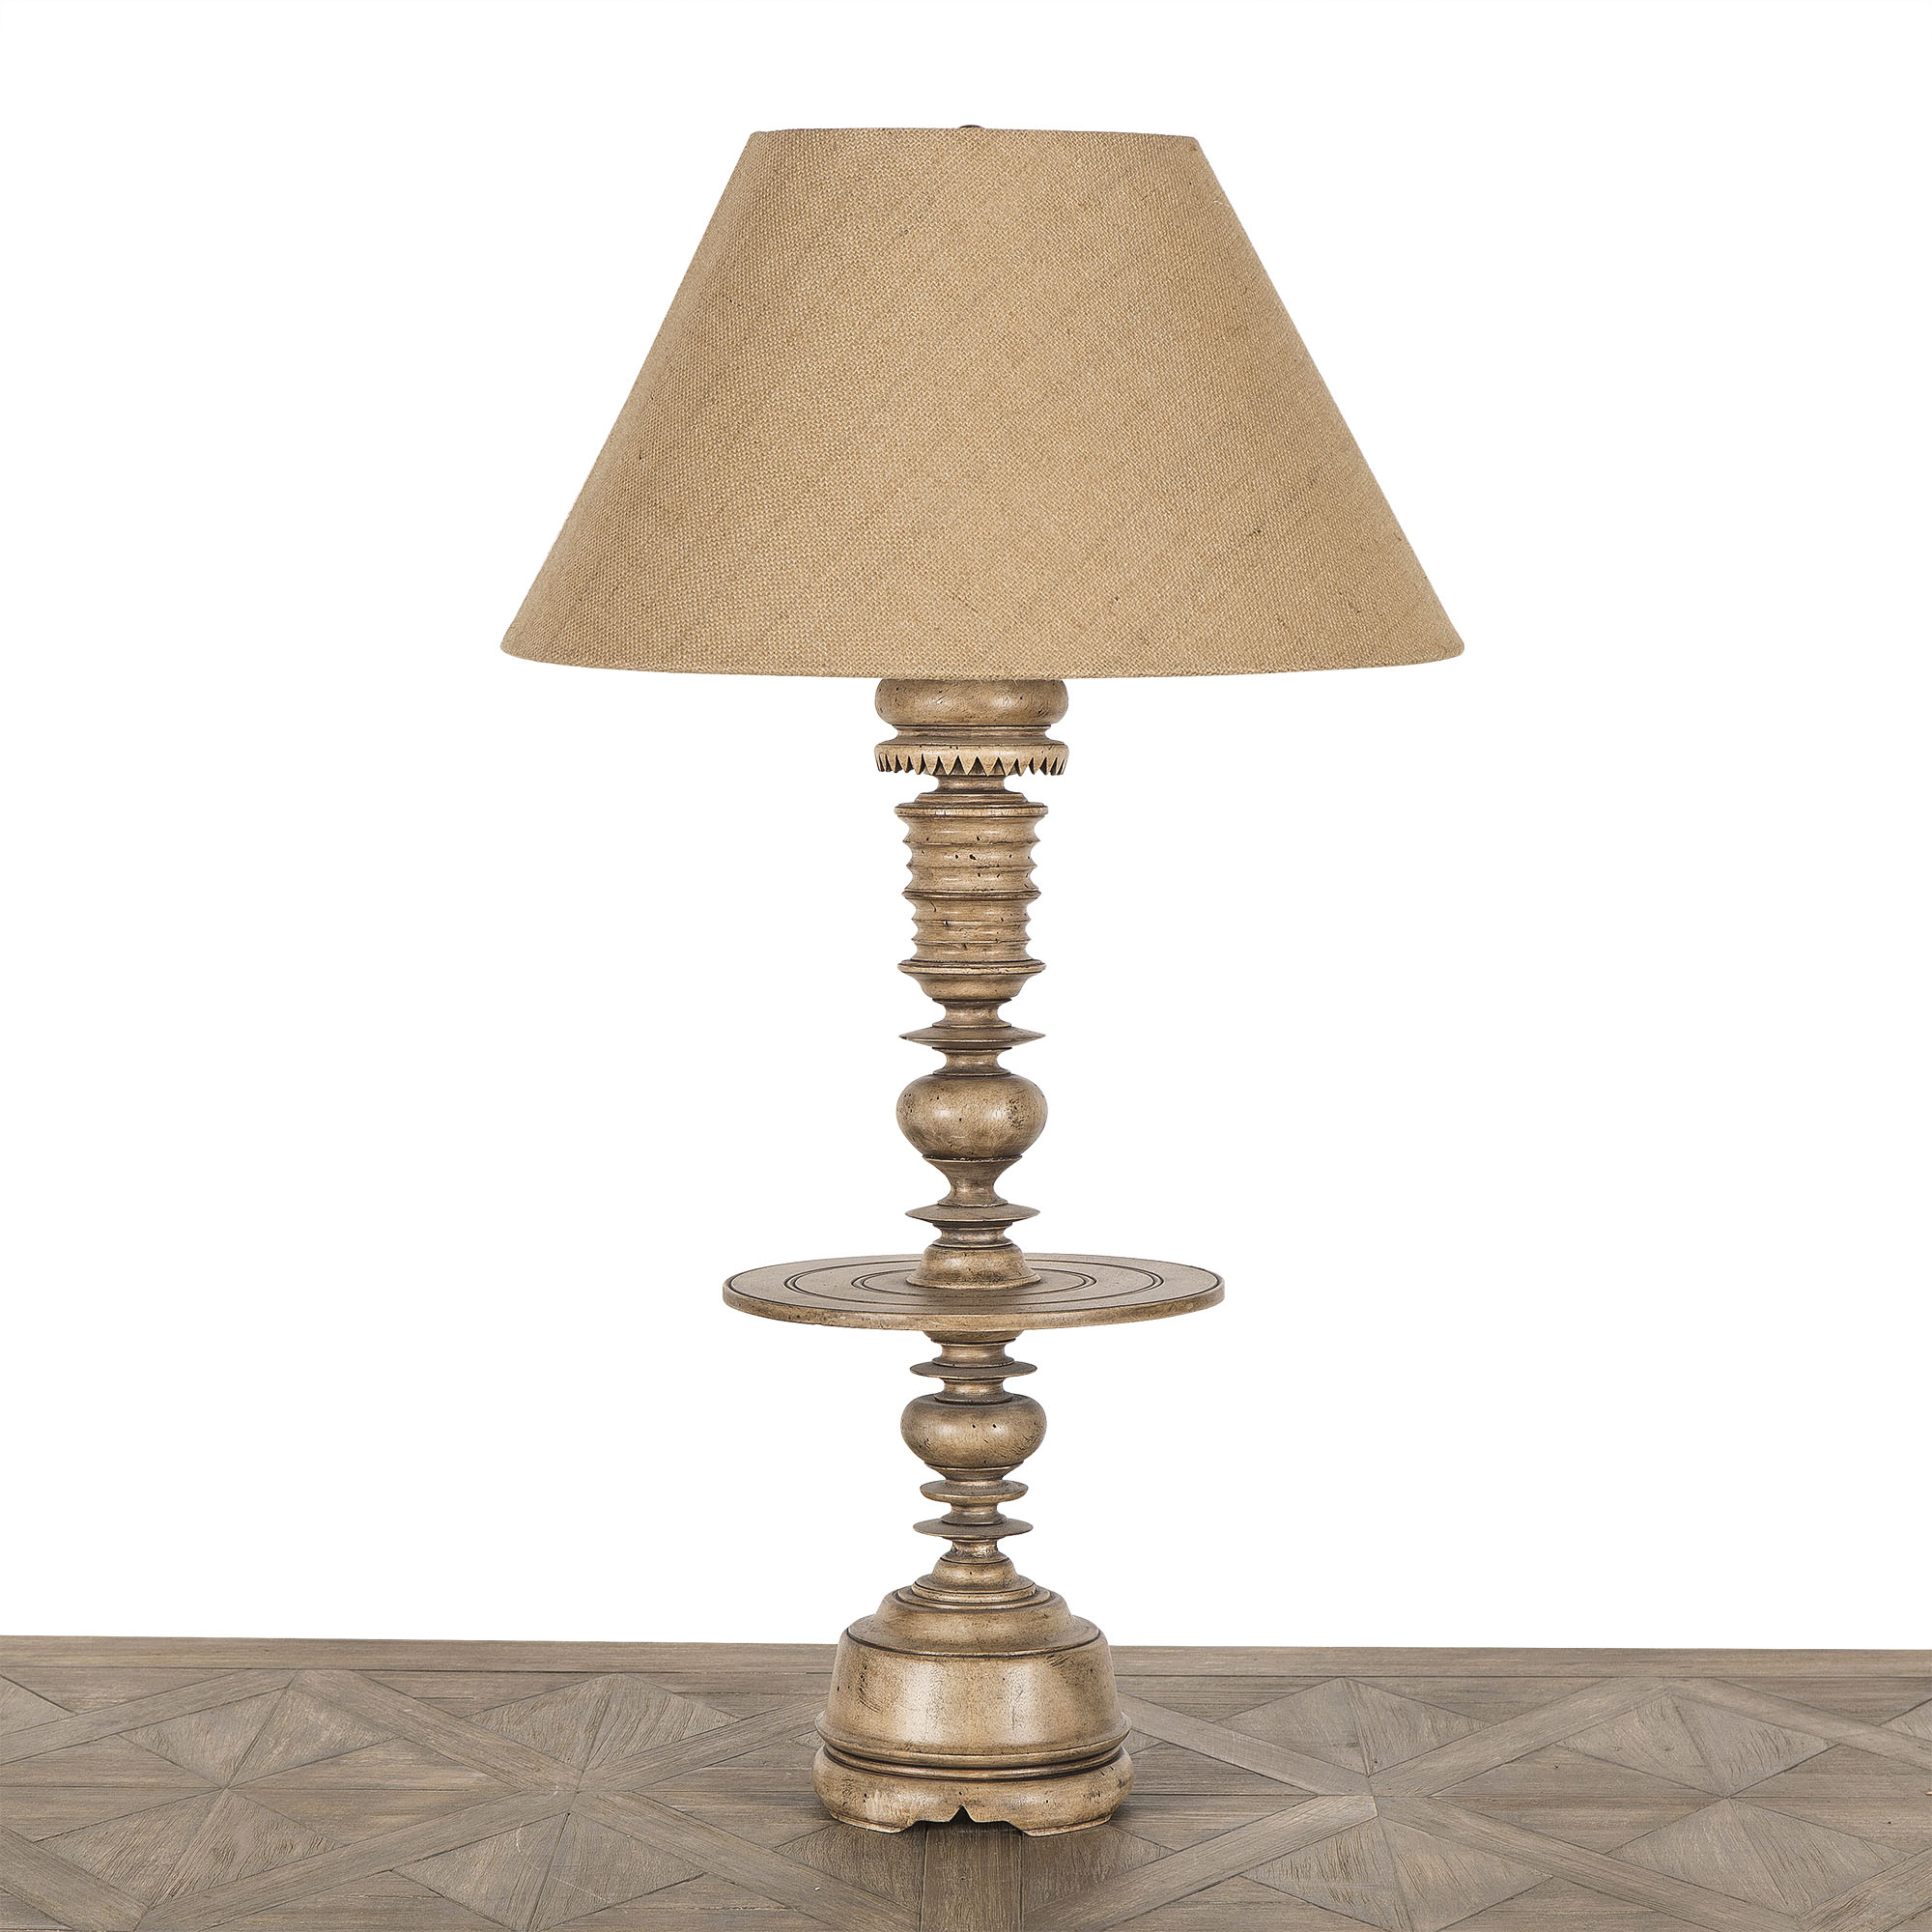 LI061F06 - barcelona table lamp w jute shade.jpg